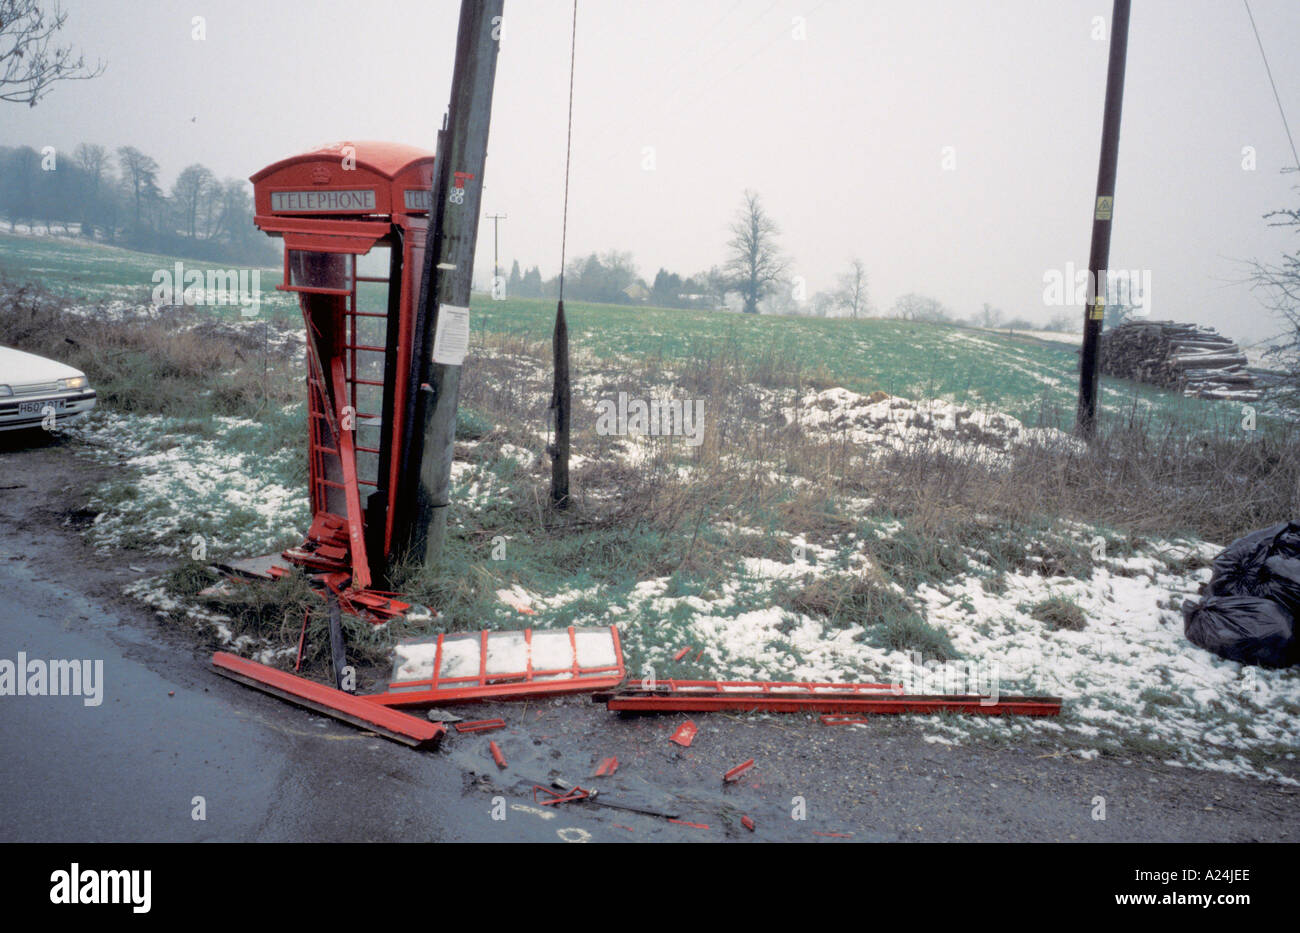 Near Wroughton Wiltshire England Telephone Box Kiosk Destroyed by car automobile in road traffic accident - Stock Image